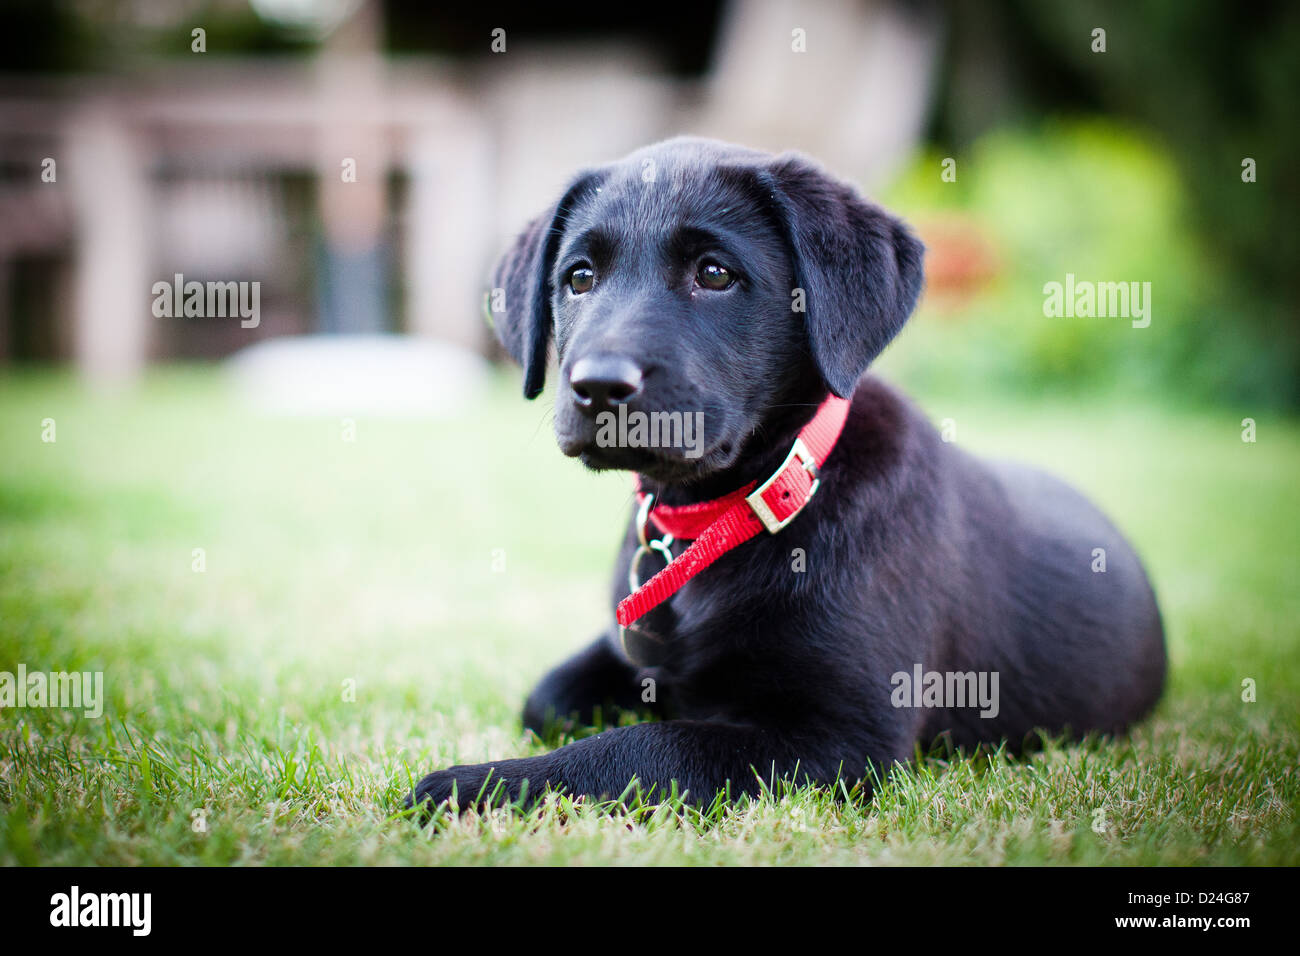 A Black Labrador Puppy with a red collar - Stock Image